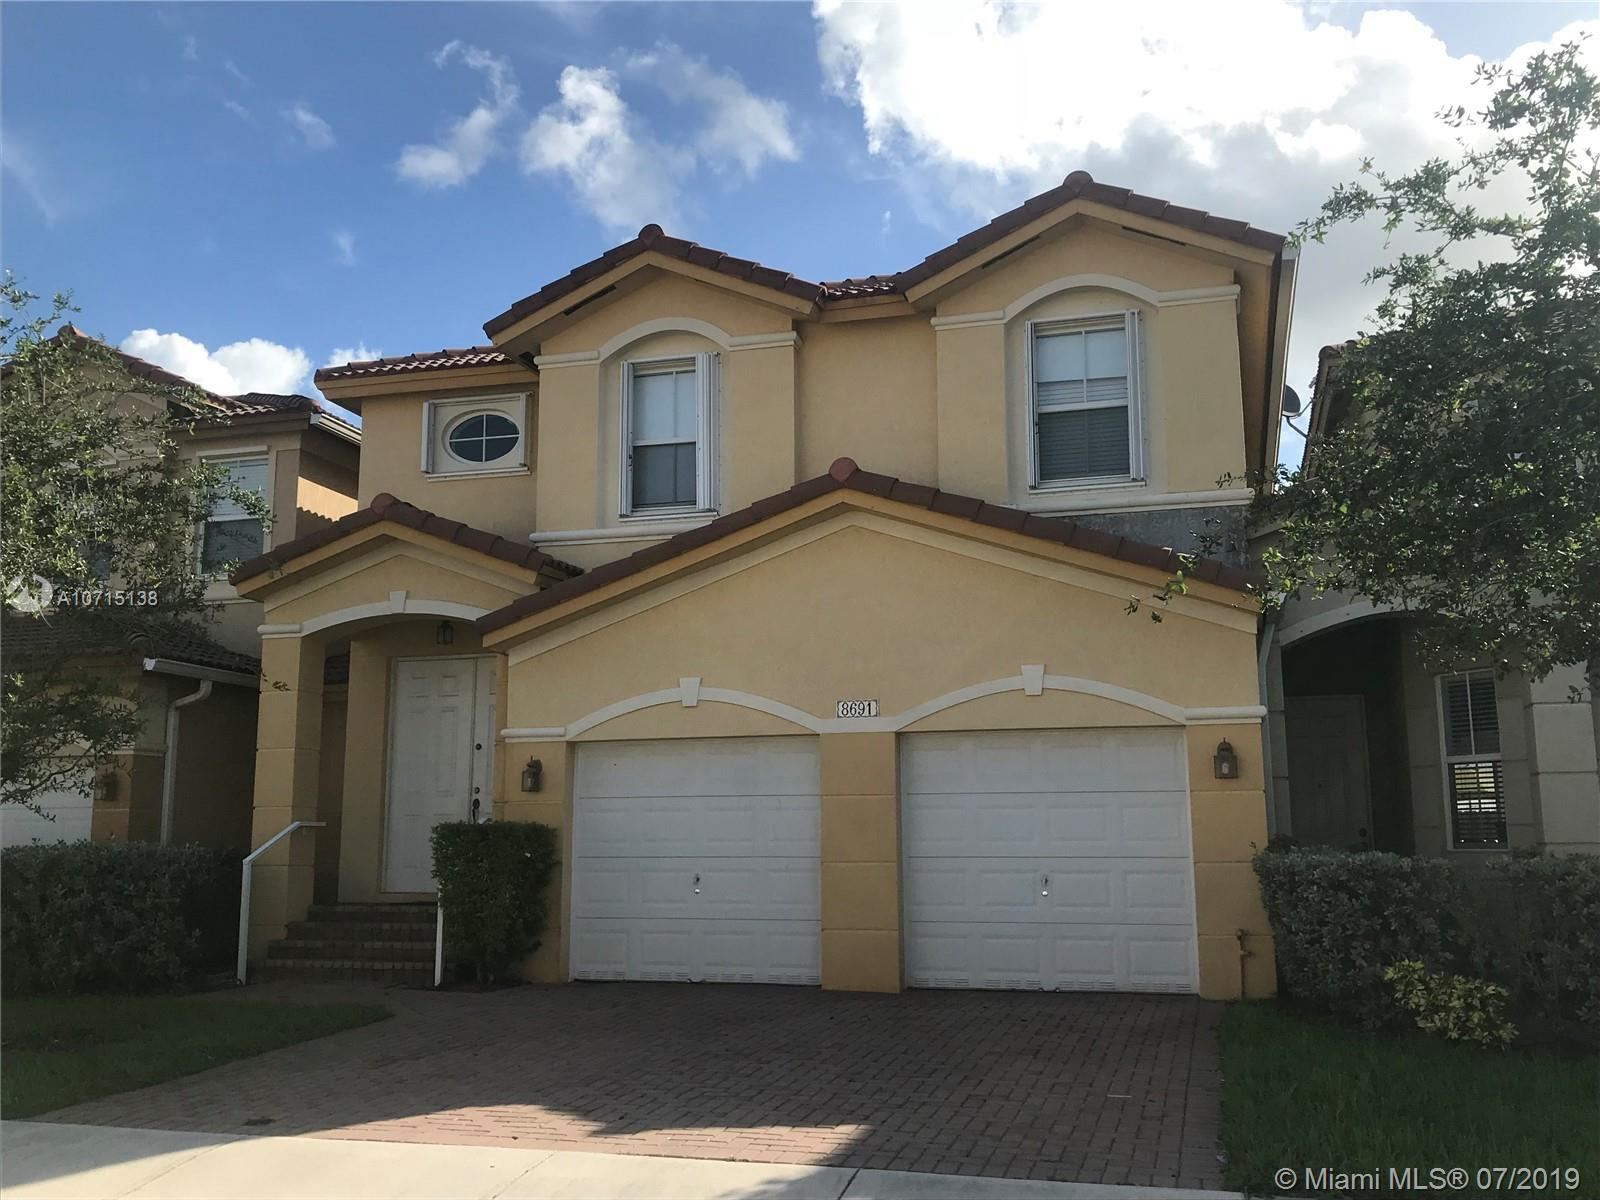 Islands At Doral - 8691 NW 109th Ct, Doral, FL 33178